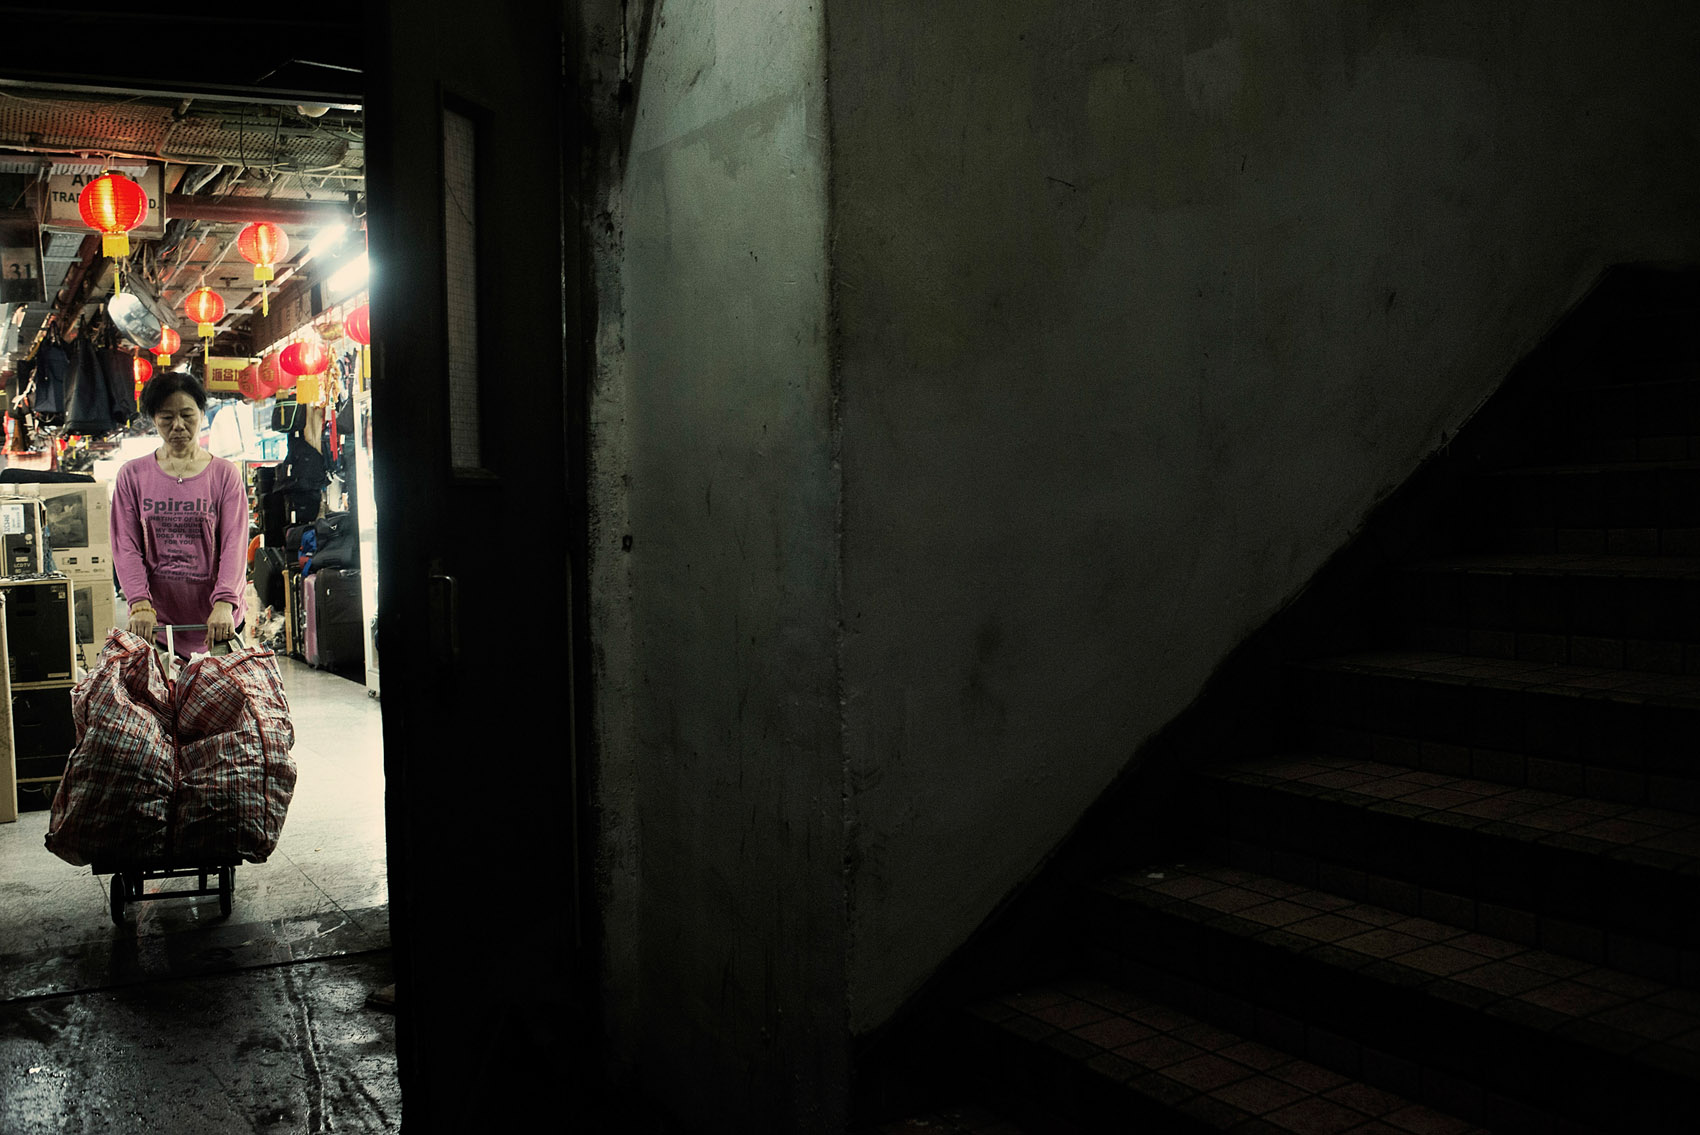 A worker of the Chungking Mansions moving goods out of the building..